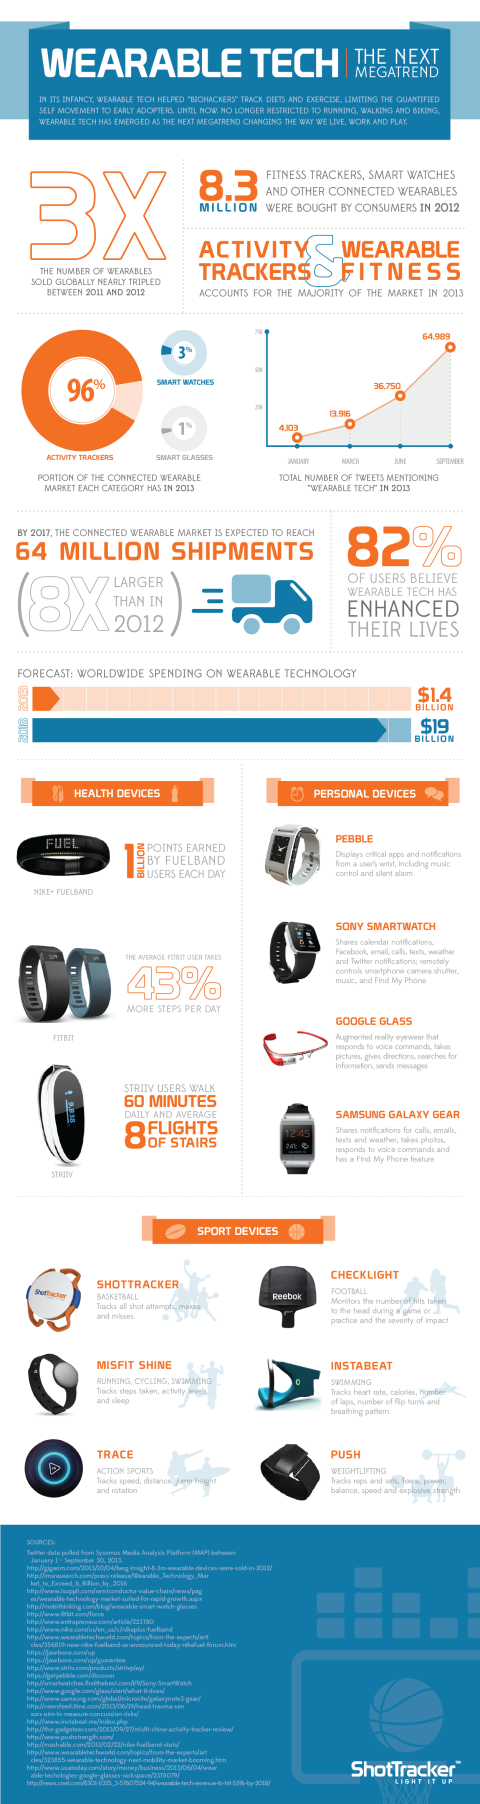 The-Future-of-Wearable-Technology-in-Healthcare-Infographic